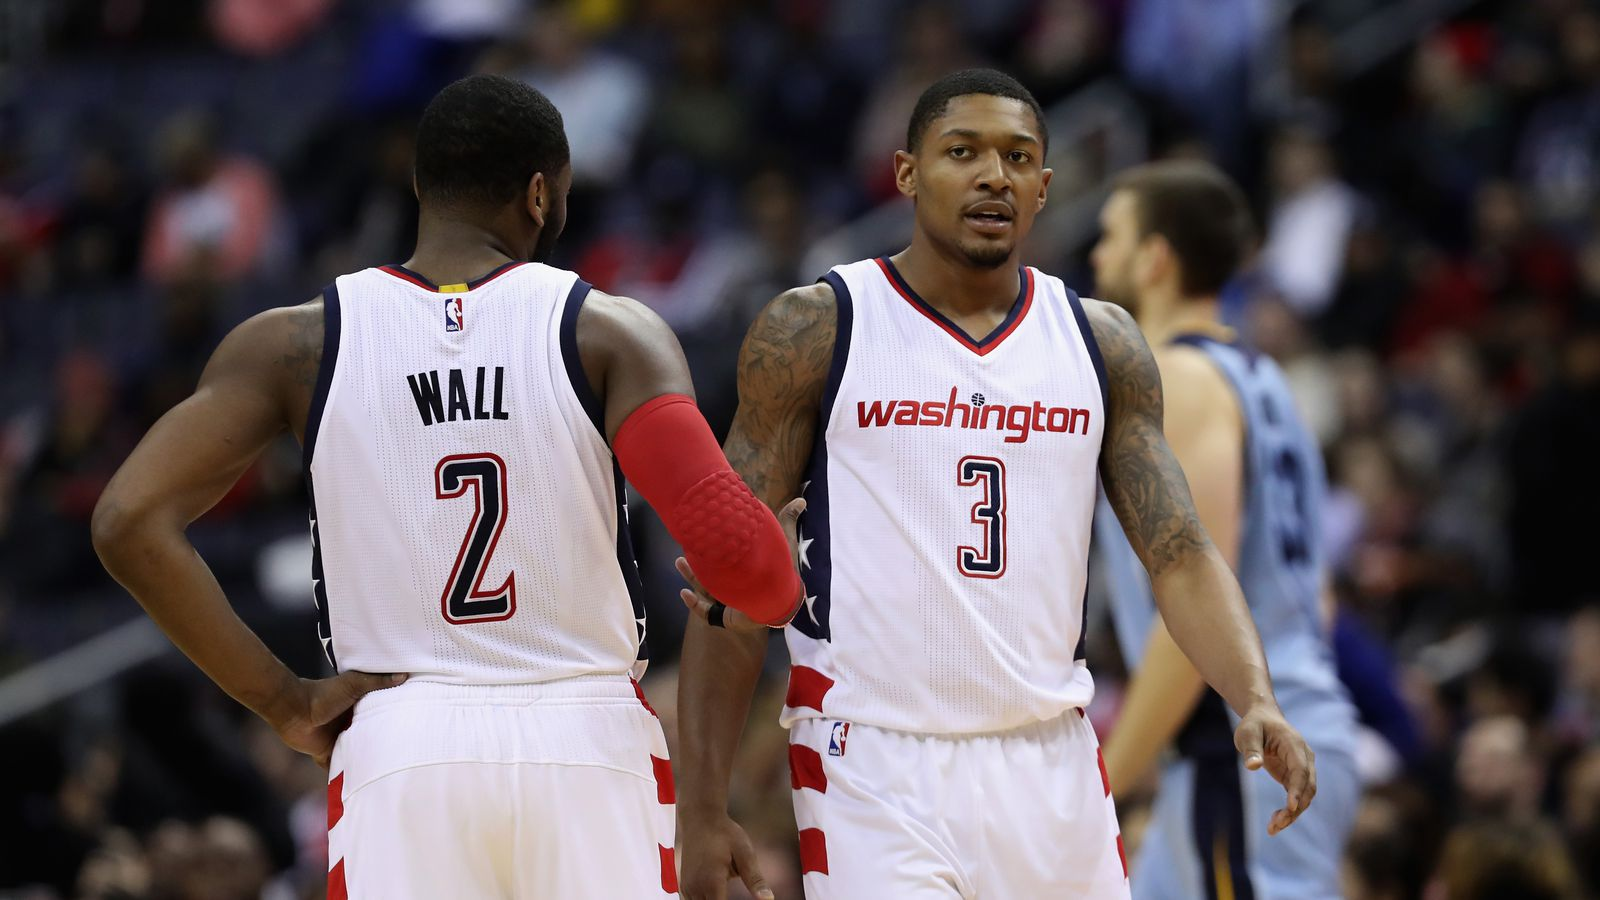 John Wall and Bradley Beal finish in Top 10 of NBA All-Star voting results